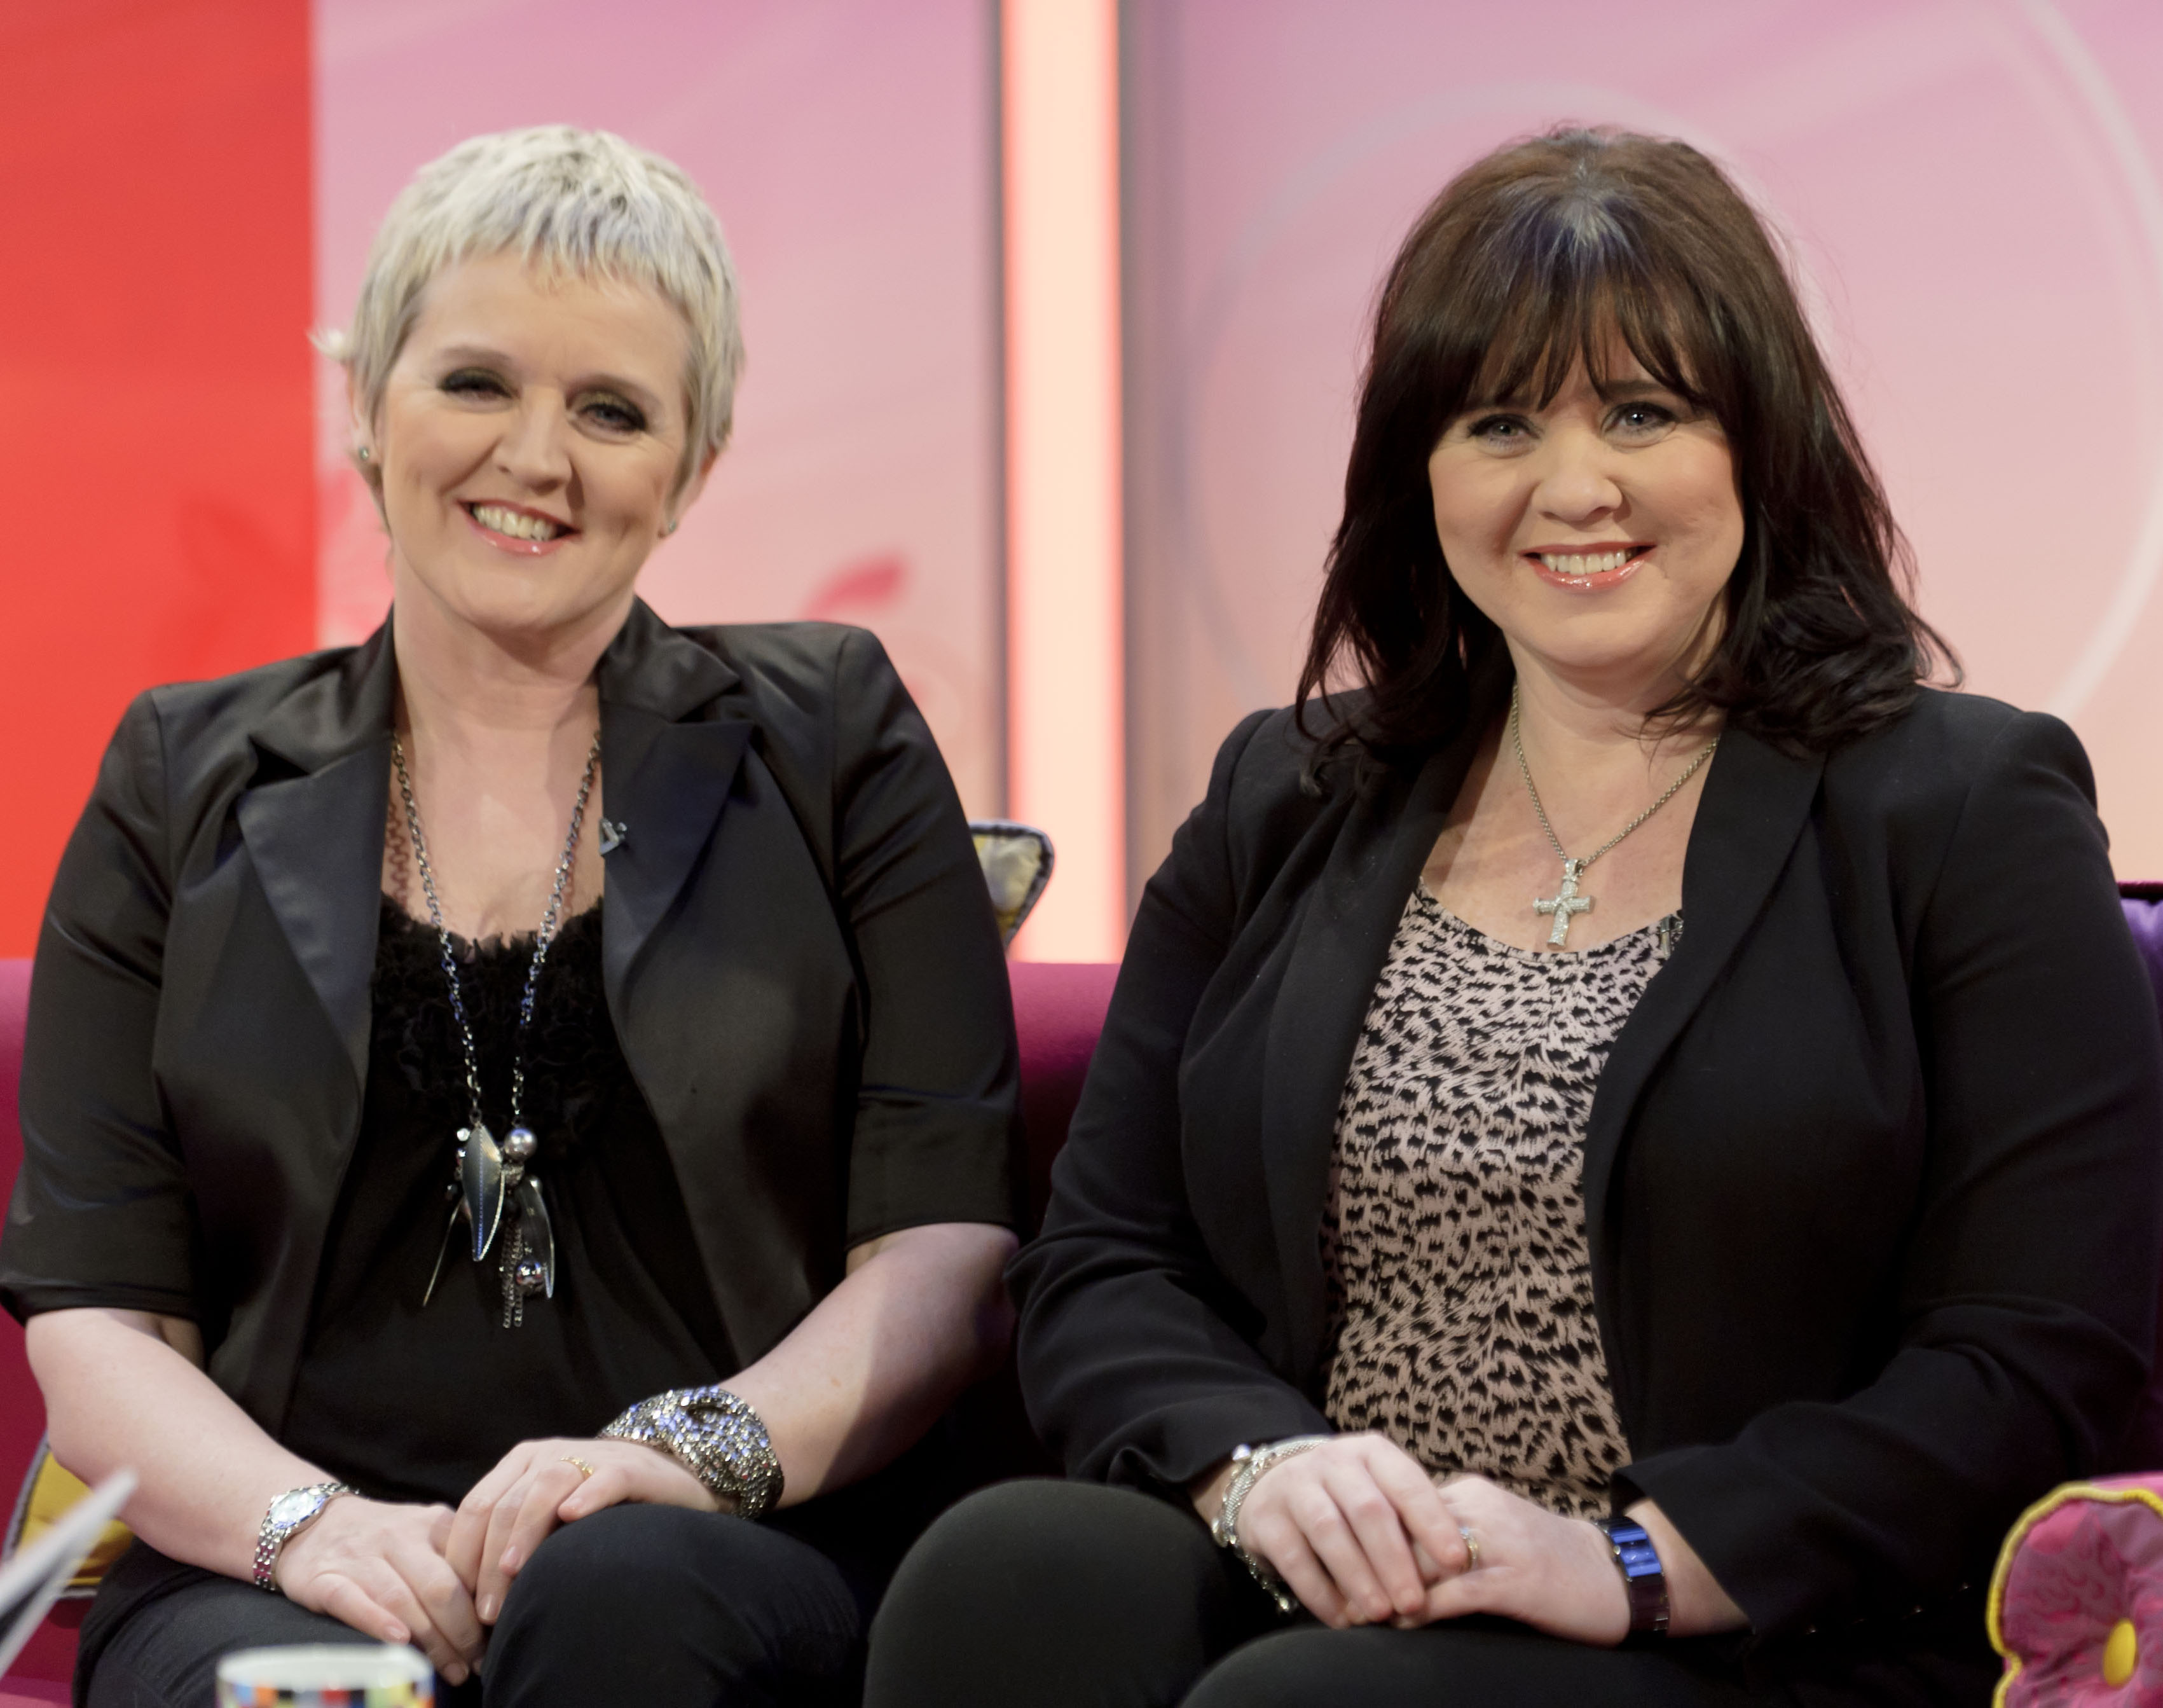 Coleen Nolan admits her sister's health battles prompted her